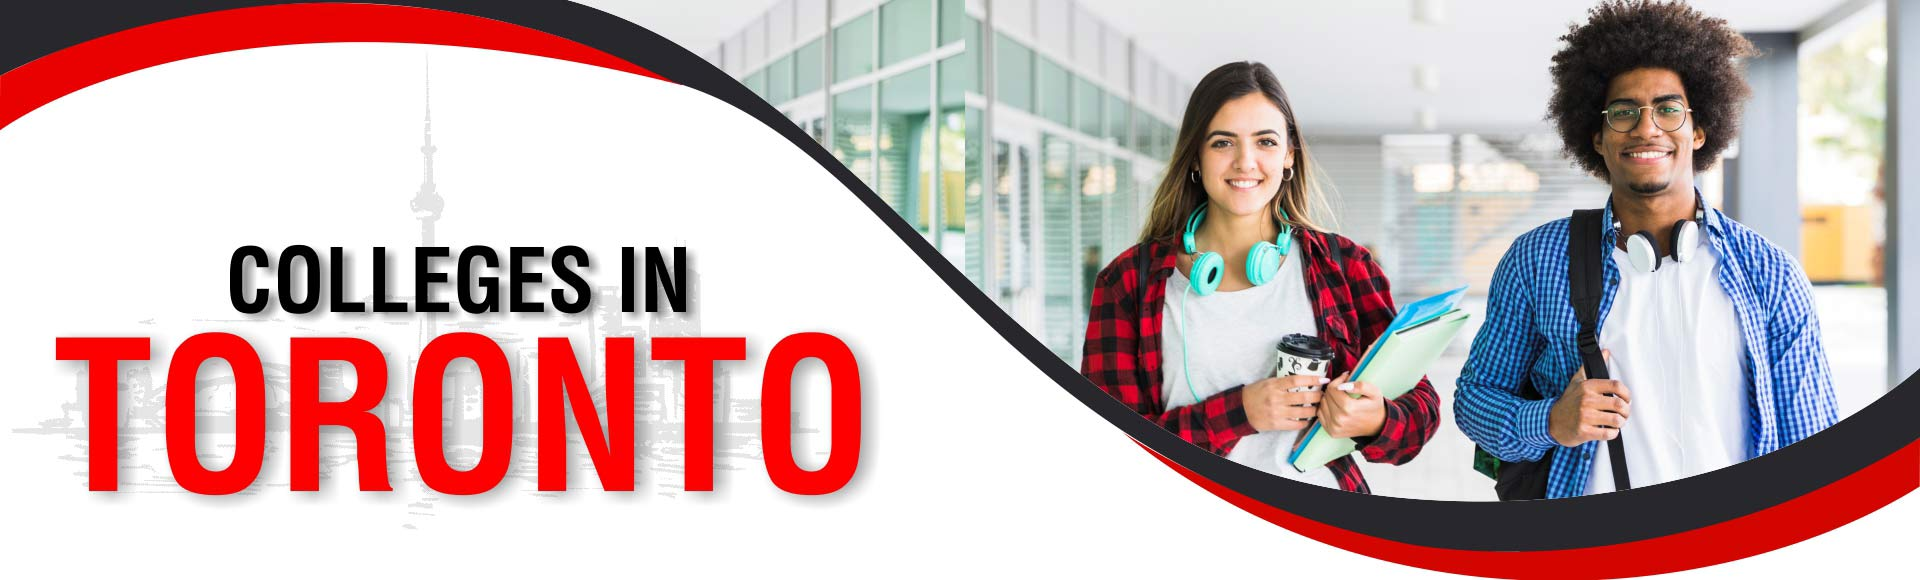 Colleges in Toronto